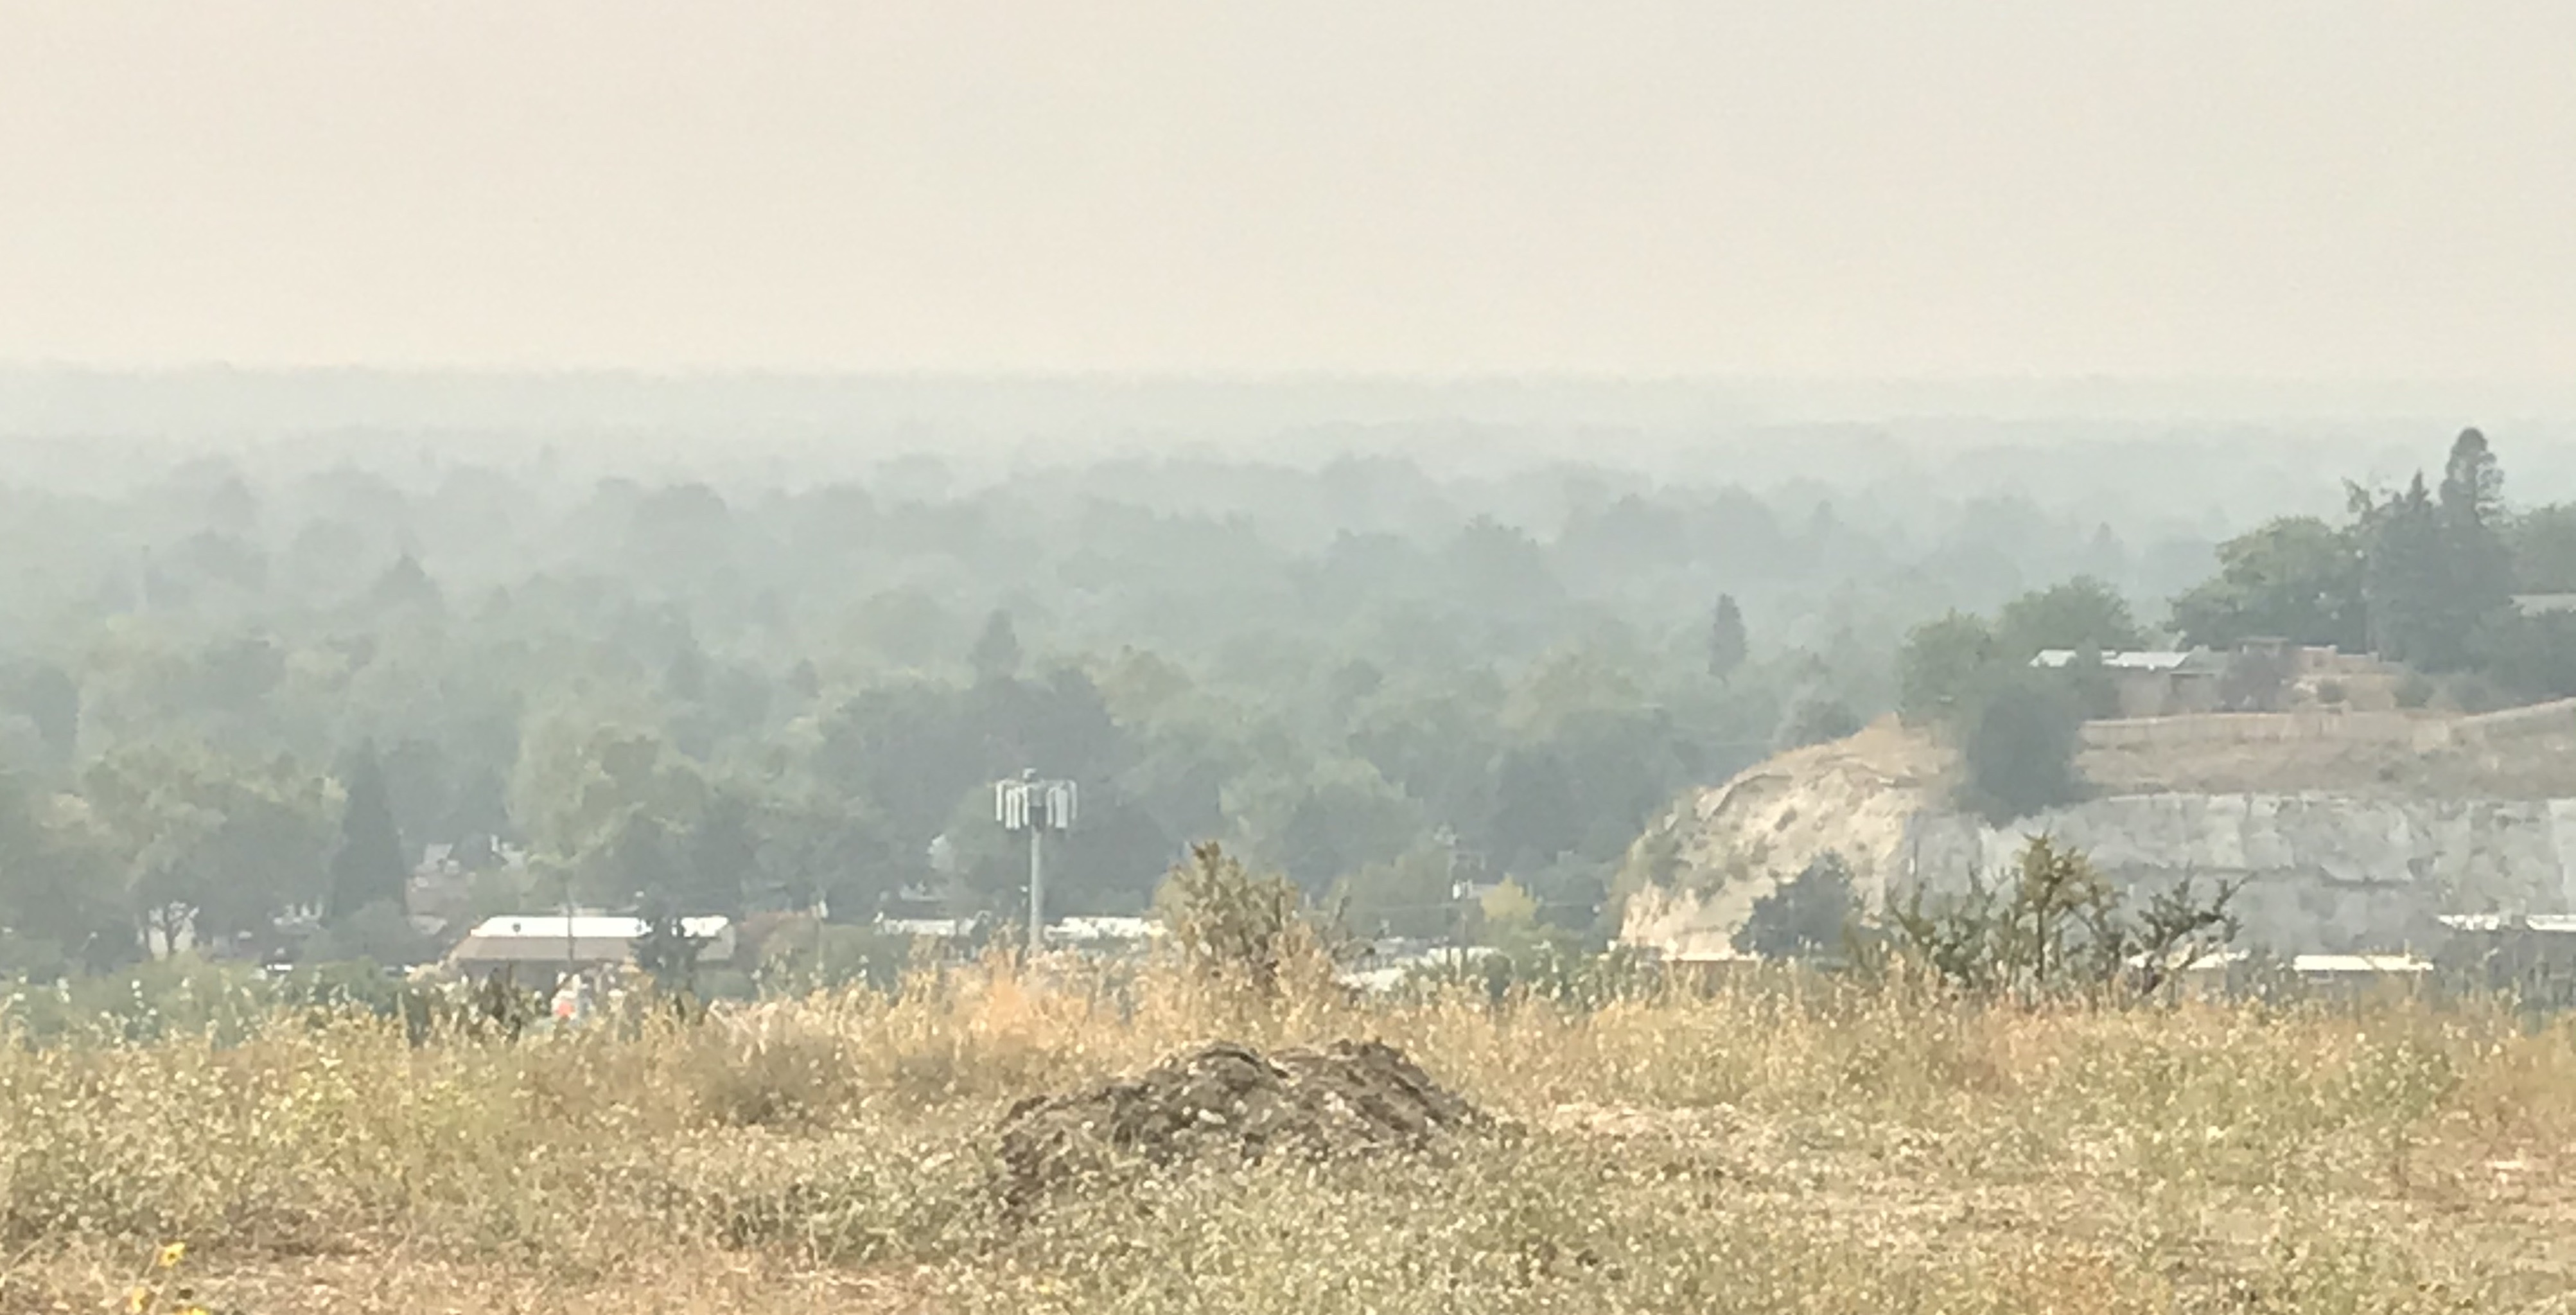 Poor air quality in Boise, ID on September 16, 2020. Staff photo.